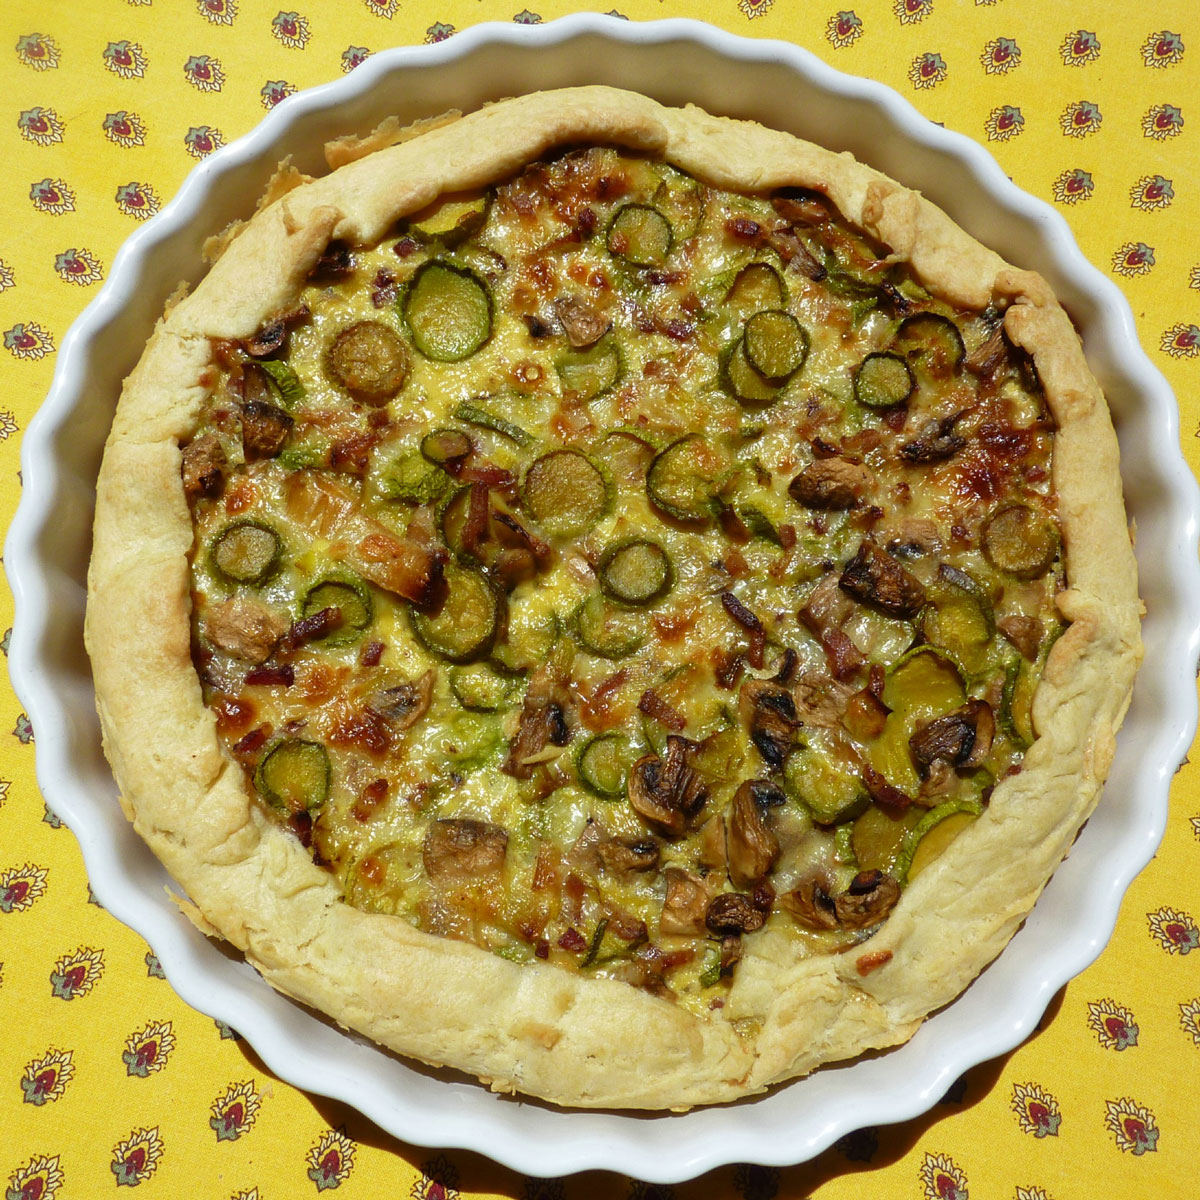 Quiche courgette and mushrooms